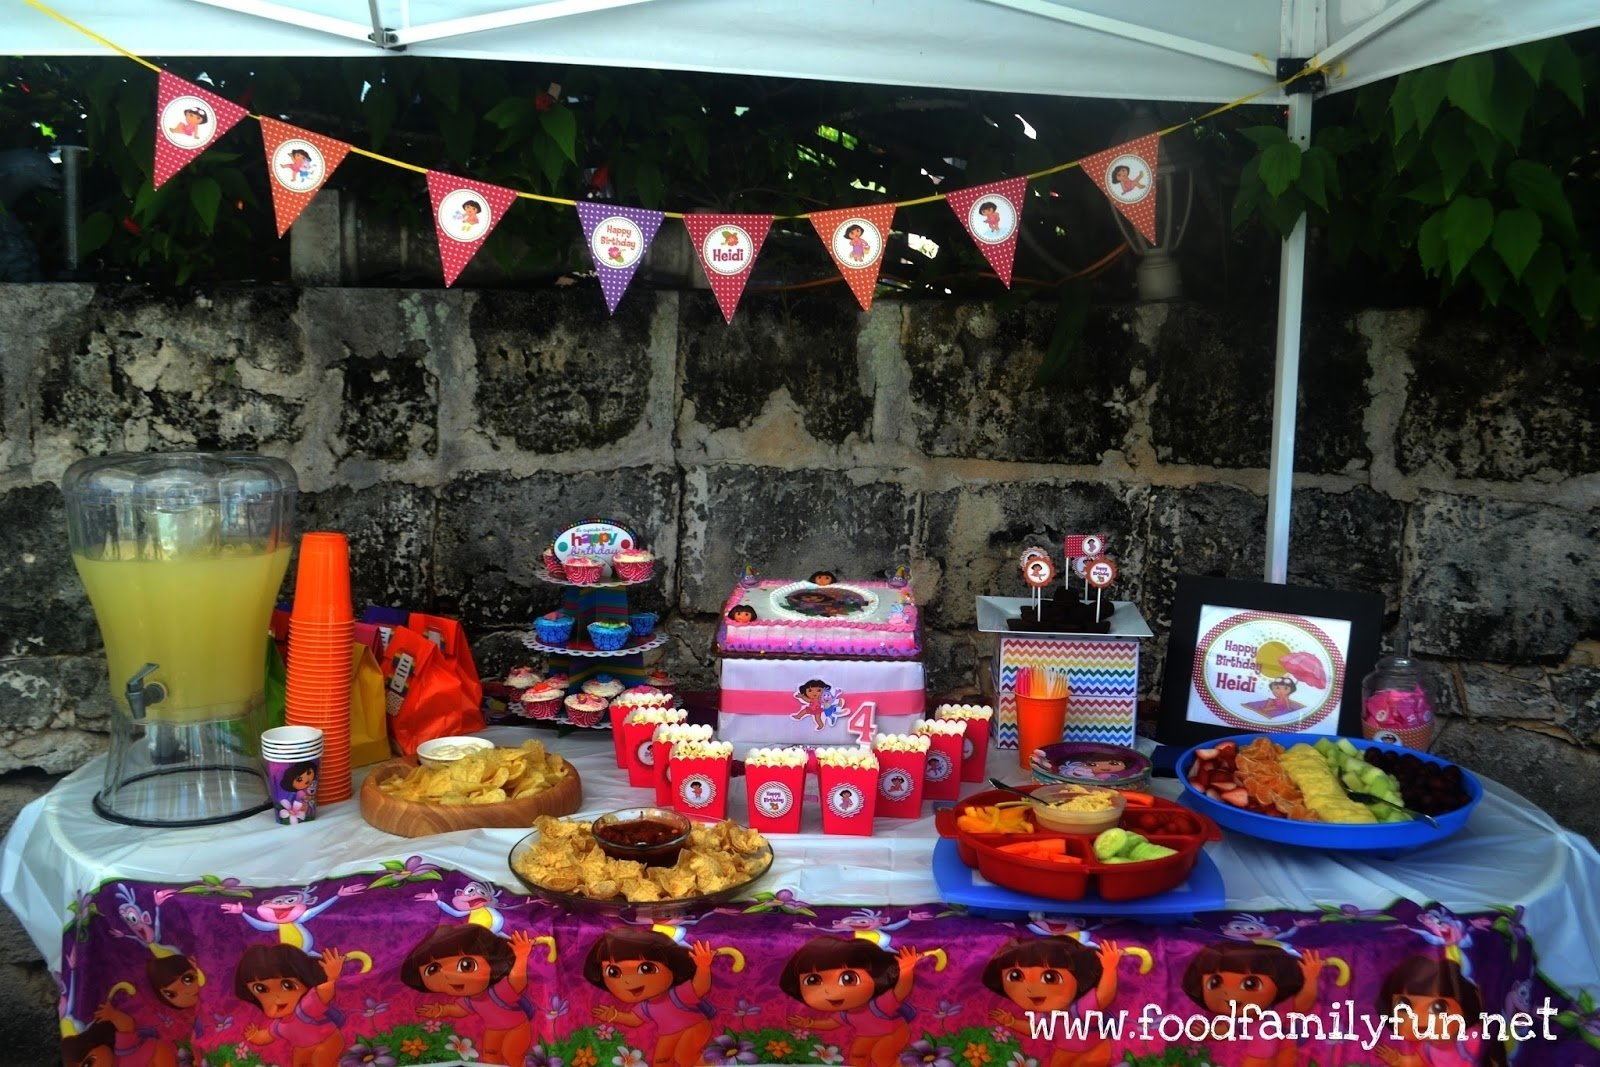 10 Stylish Birthday Party Food Ideas On A Budget food family fun dora the explorer birthday party on a budget 1 2020